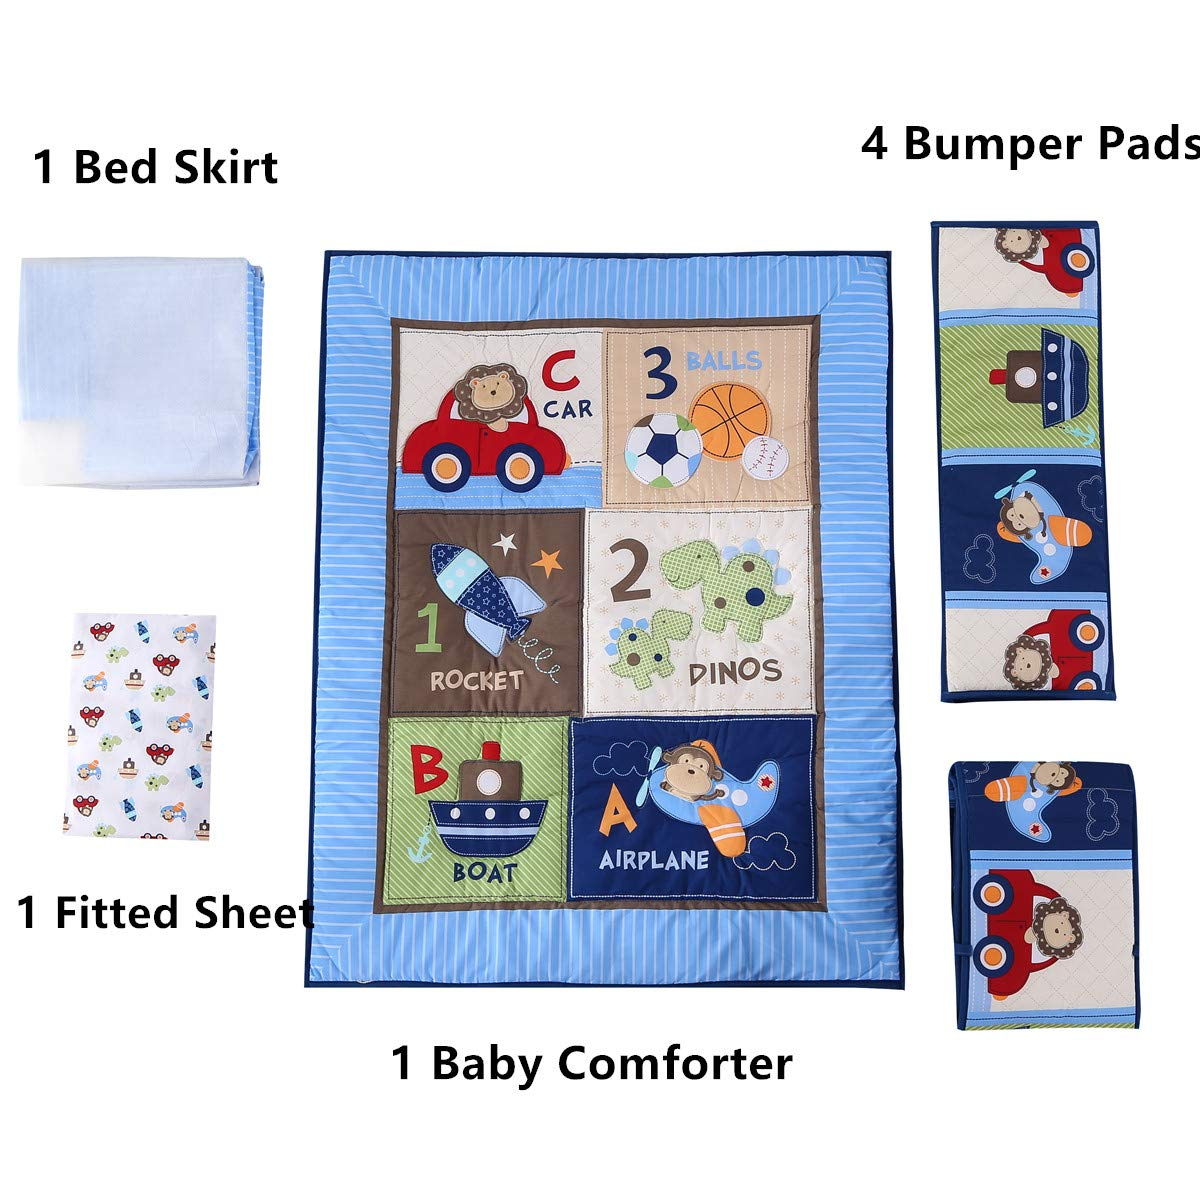 Wowelife Blue Crib Bedding Sets for Boys 7 Piece Travel Car and Airplane for Baby(Little Pilot) by Wowelife (Image #8)